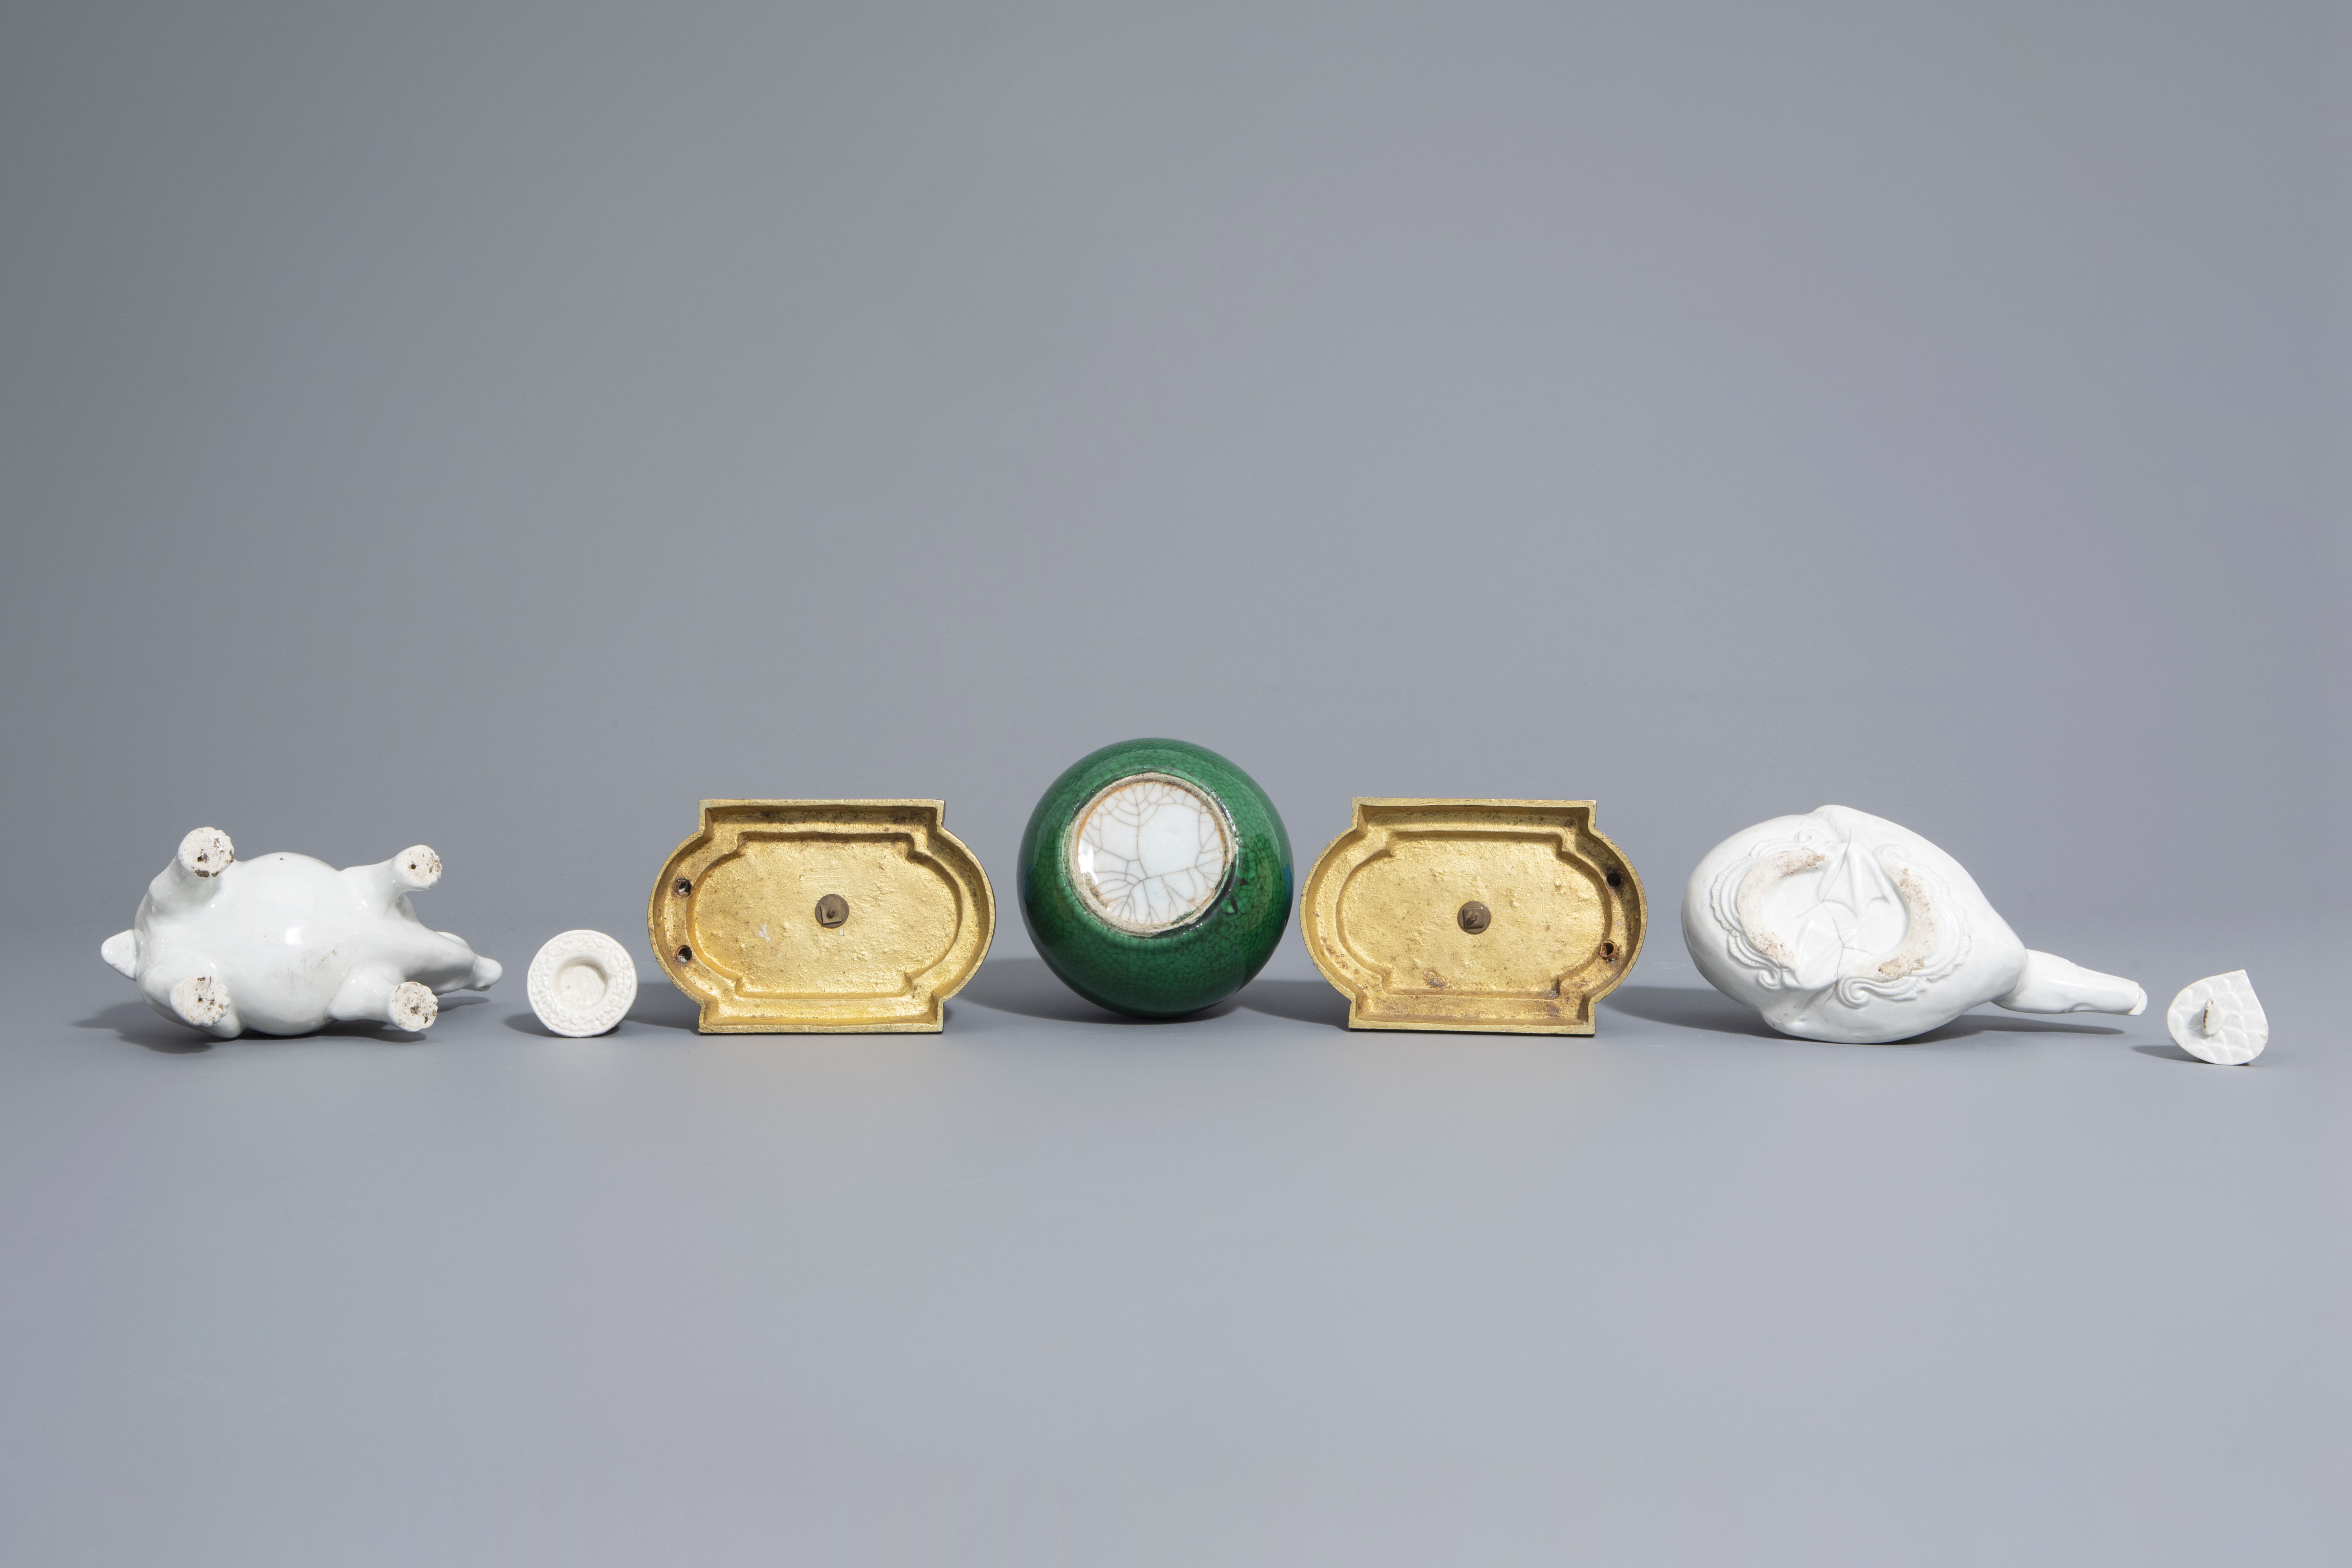 A Chinese monochrome green vase, 2 blanc de Chine teapots & a pair of polychrome birds, 19th/20th C - Image 7 of 7